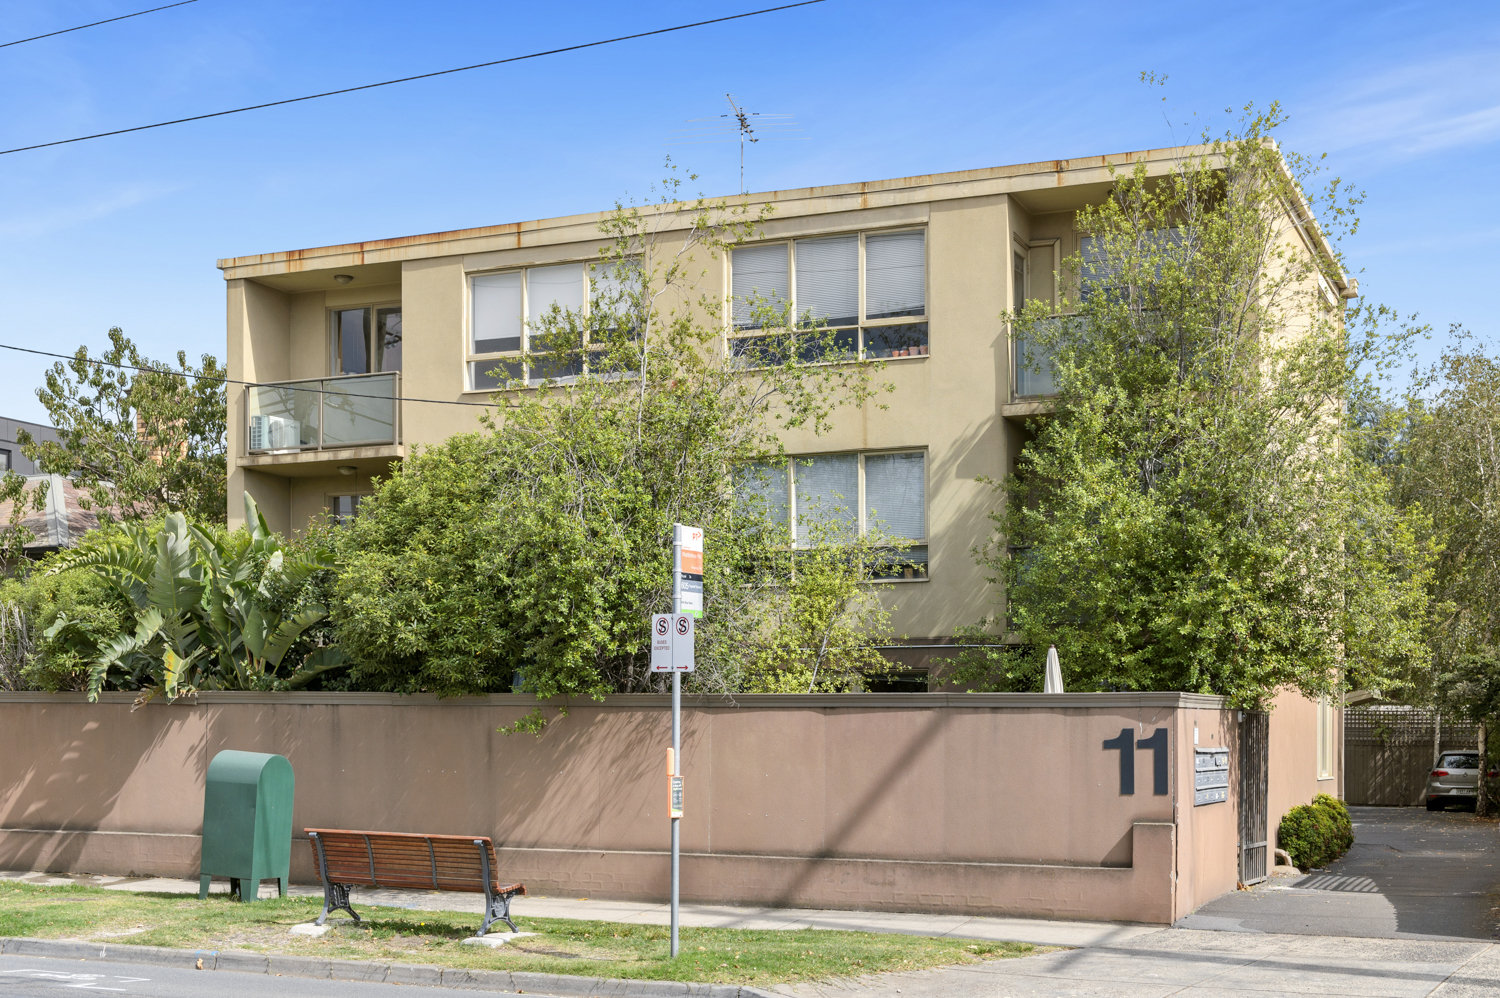 12-11-kooyong-road-armadale-student-accommodation-Melbourne-Exterior-Unilodgers